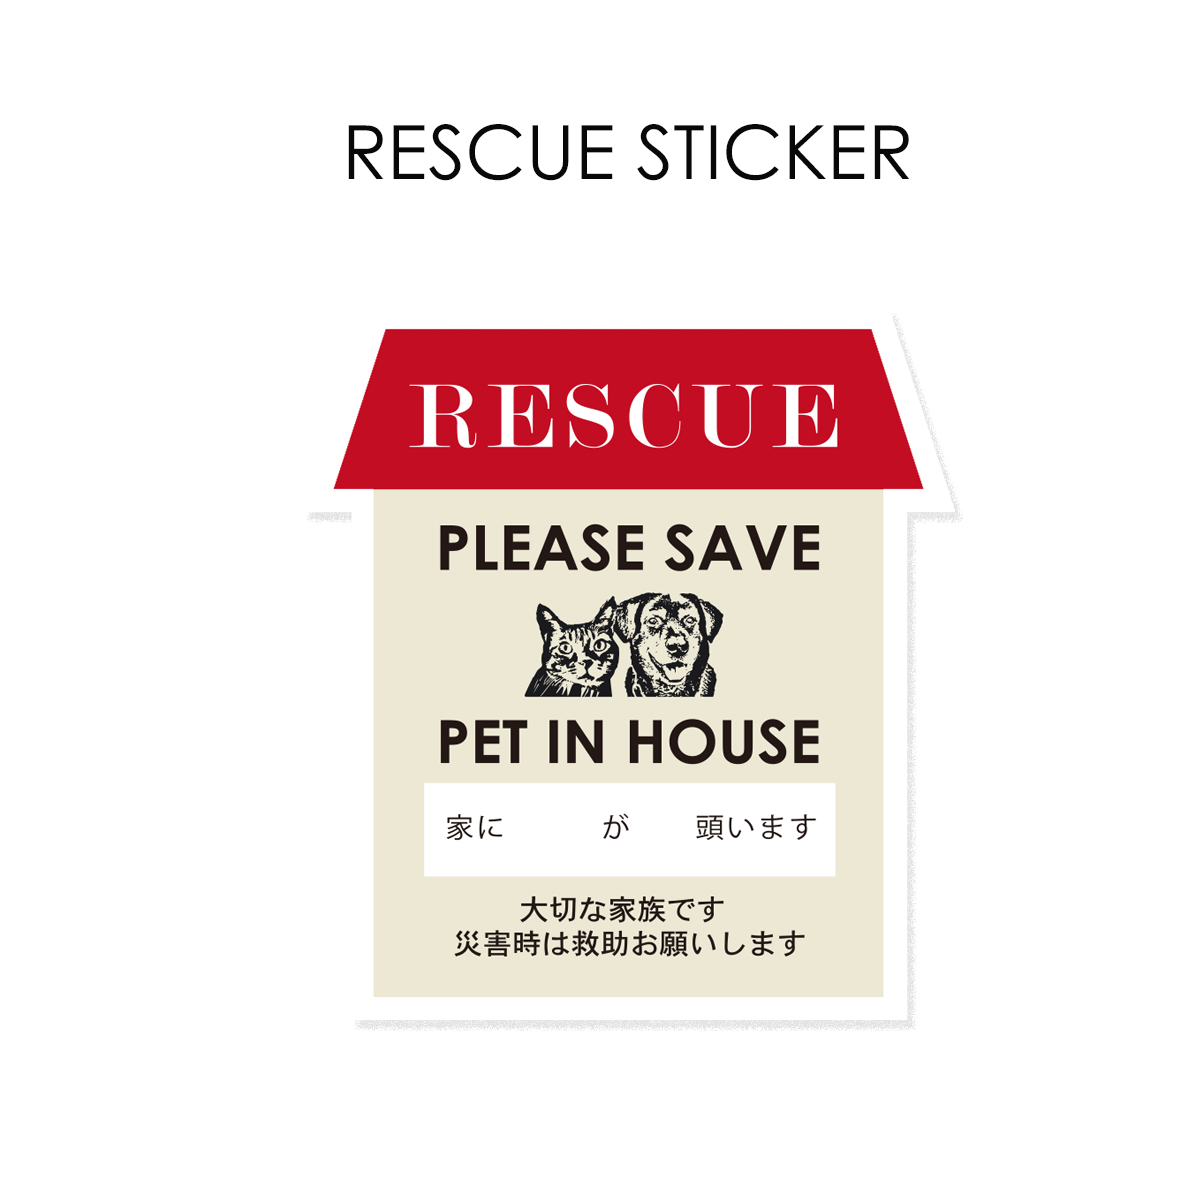 RESCUE STICKER 画像